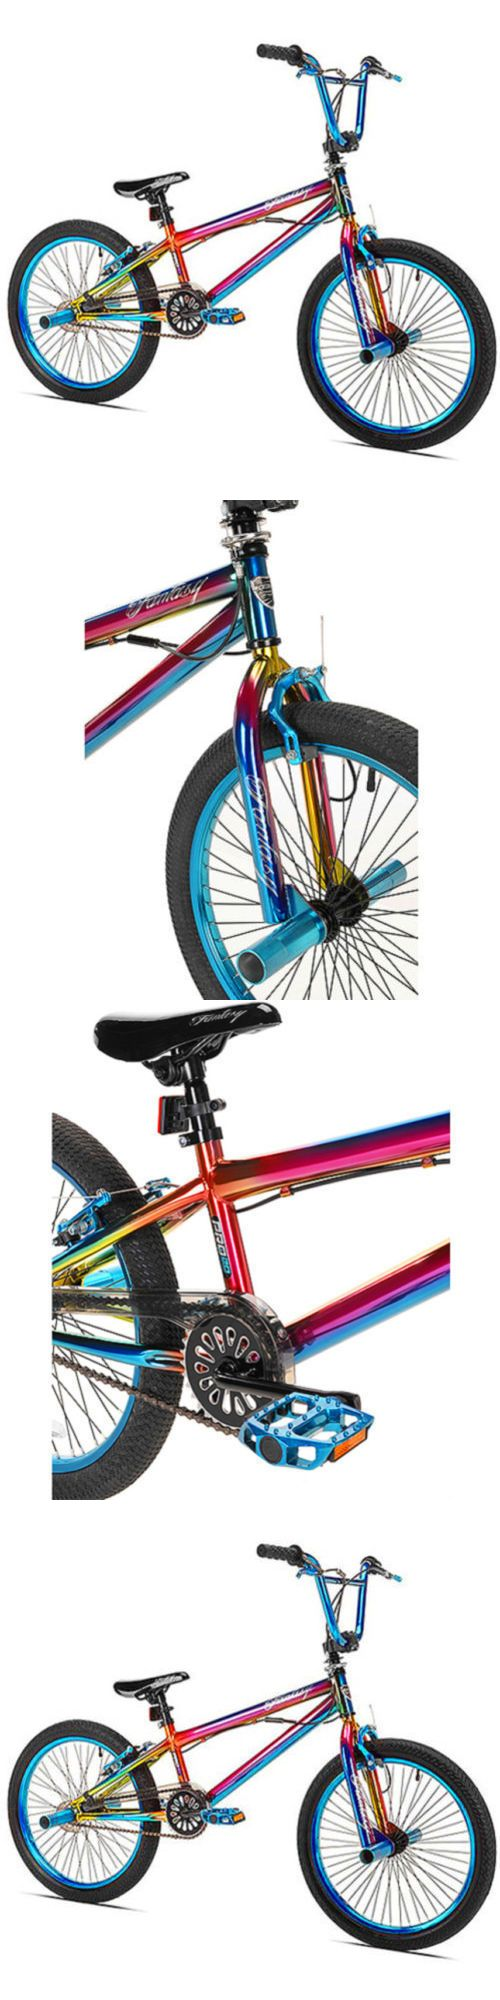 Other Cycling 2904: 20 Kent Fantasy Bmx Pro Bike Freestyle Boys Girls Bicycle Steel Frame Generic -> BUY IT NOW ONLY: $140.11 on eBay!